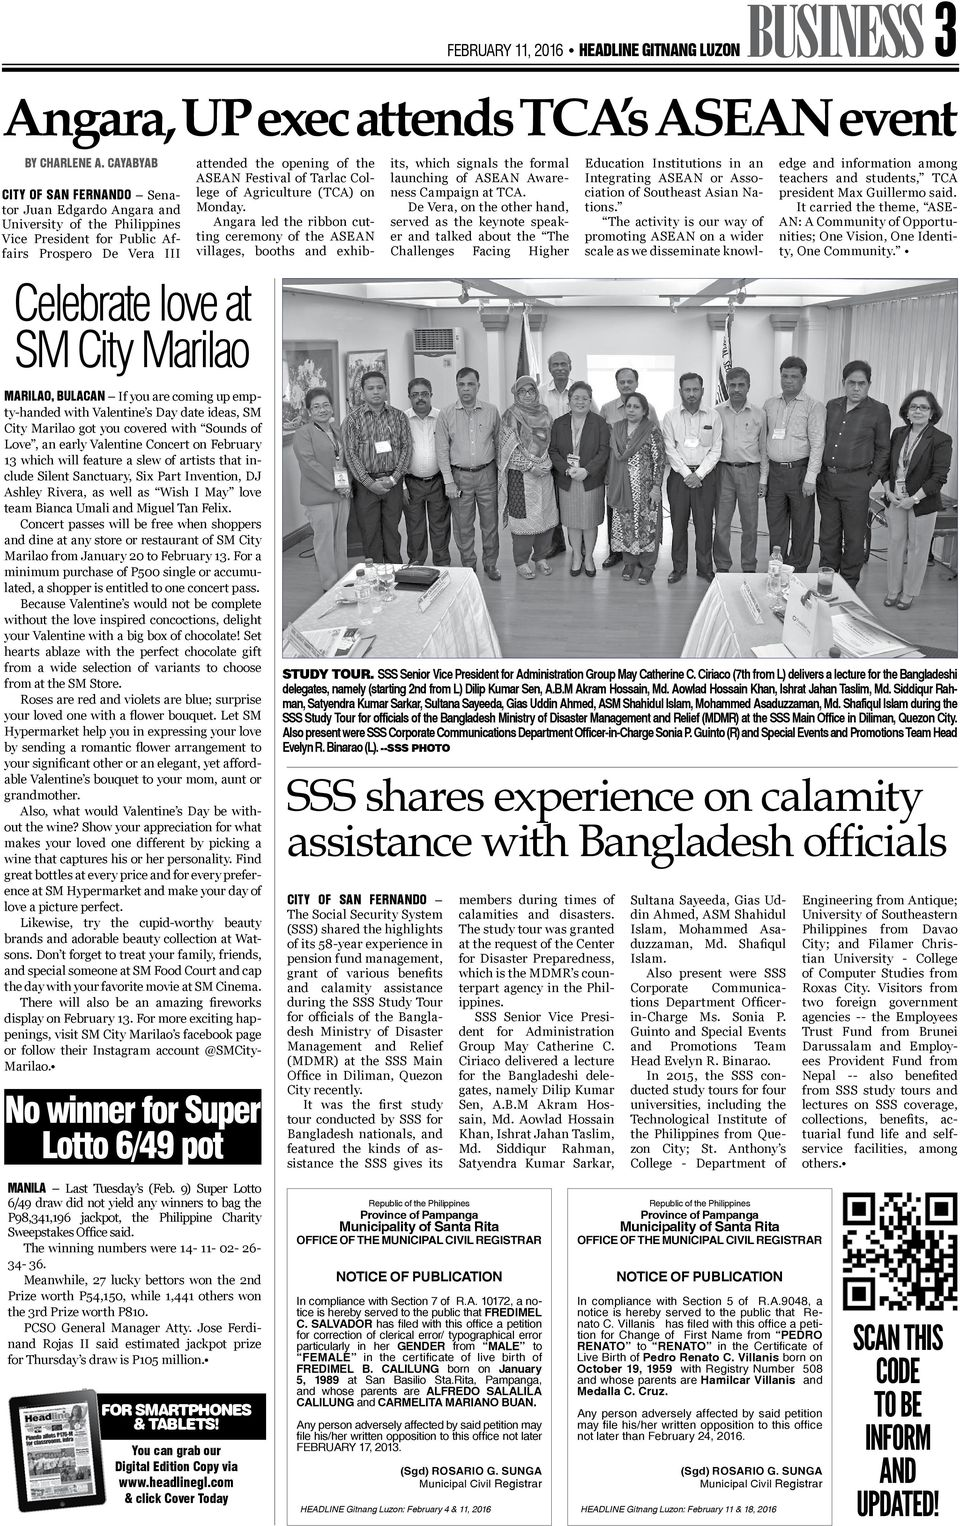 College of Agriculture (TCA) on Monday. Angara led the ribbon cutting ceremony of the ASEAN villages, booths and exhib- its, which signals the formal launching of ASEAN Awareness Campaign at TCA.